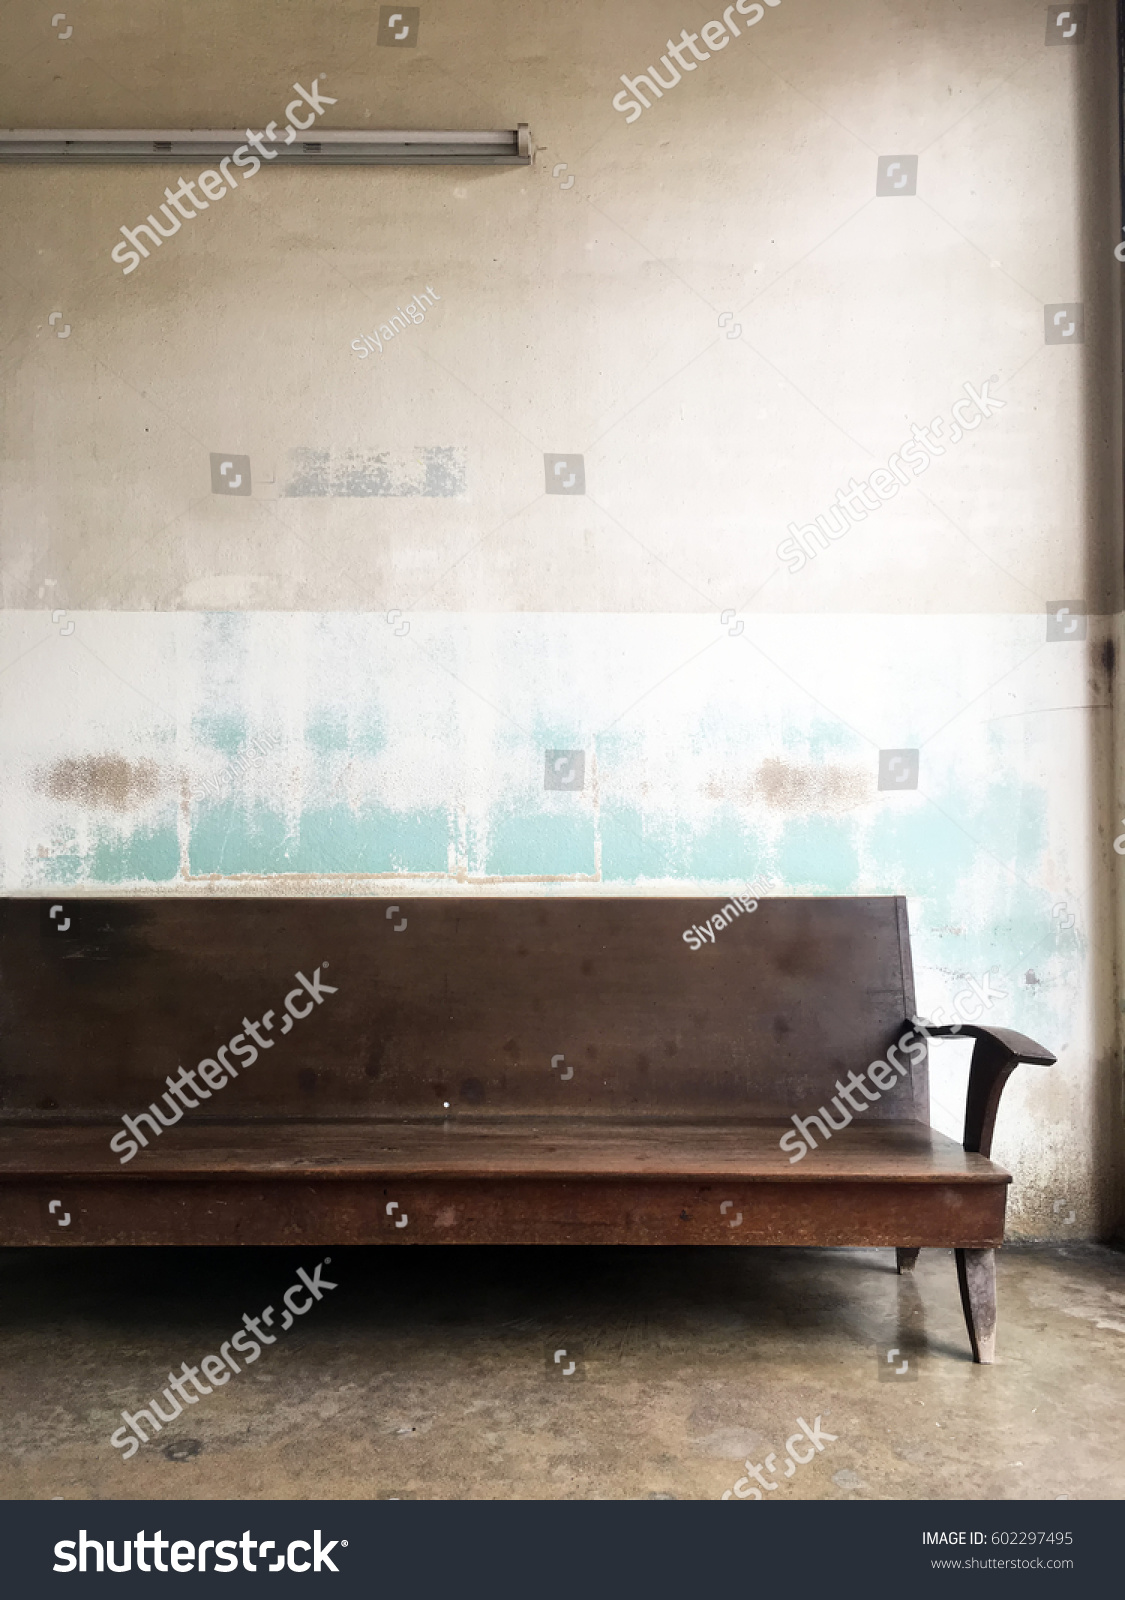 Vintage Bench Furniture Living Room Old Stock Photo (Royalty Free ...